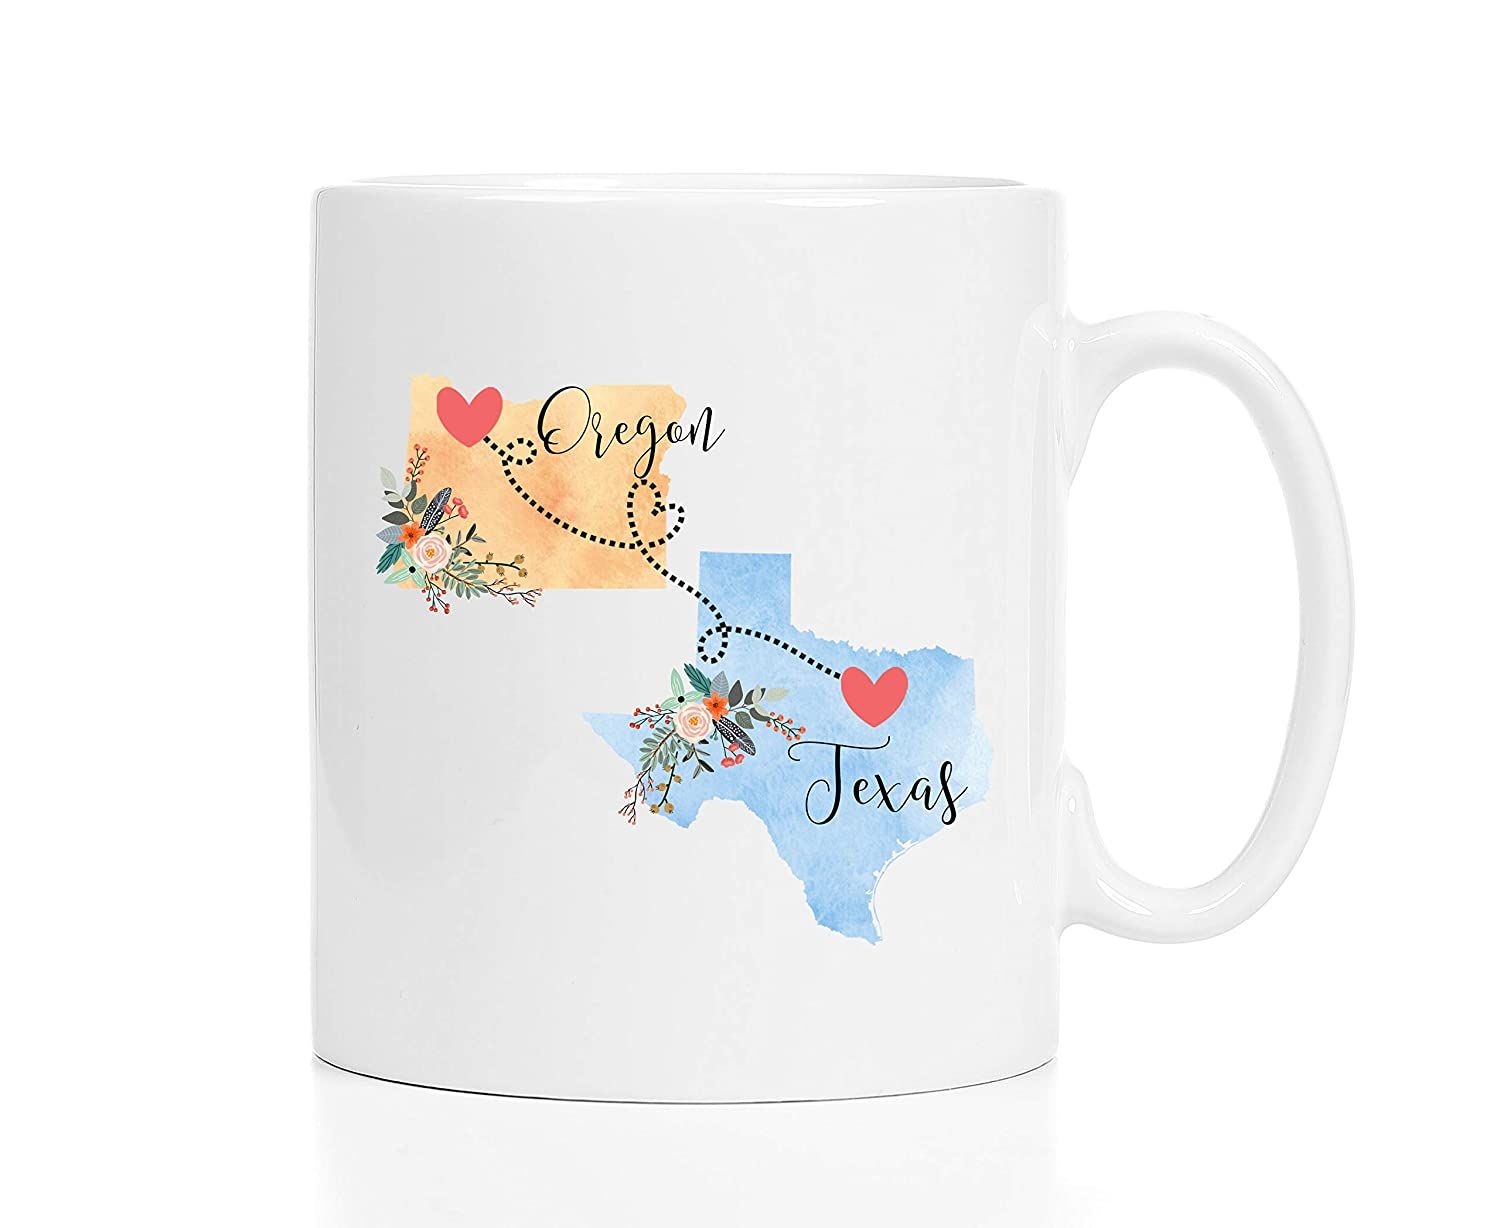 Oregon Texas Mug Coffee Cup Gift Best Friend Mom Girlfriend Aunt Grandma Birthday Mothers Day Going Away Present Moving New Job Gifts